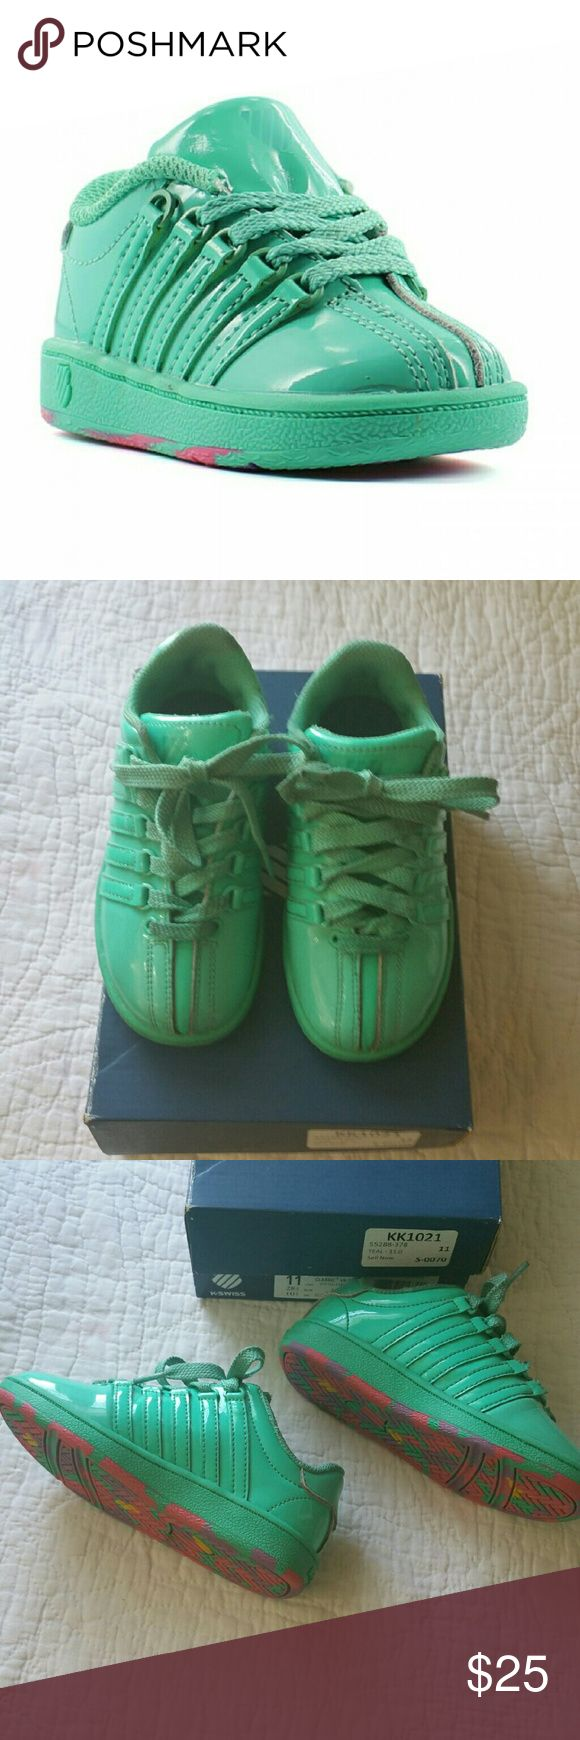 KIDS CLASSIC K SWISS VN PATENT SHOE SIZE 11 These shoes are constructed of a teal patent leather. They have metal D rings along eyelets with matching laces. They have a multicolored non marking rubber outsole for excellent traction.  These shoes are in excellent condition and have only been worn a few times K-Swiss Shoes Sneakers